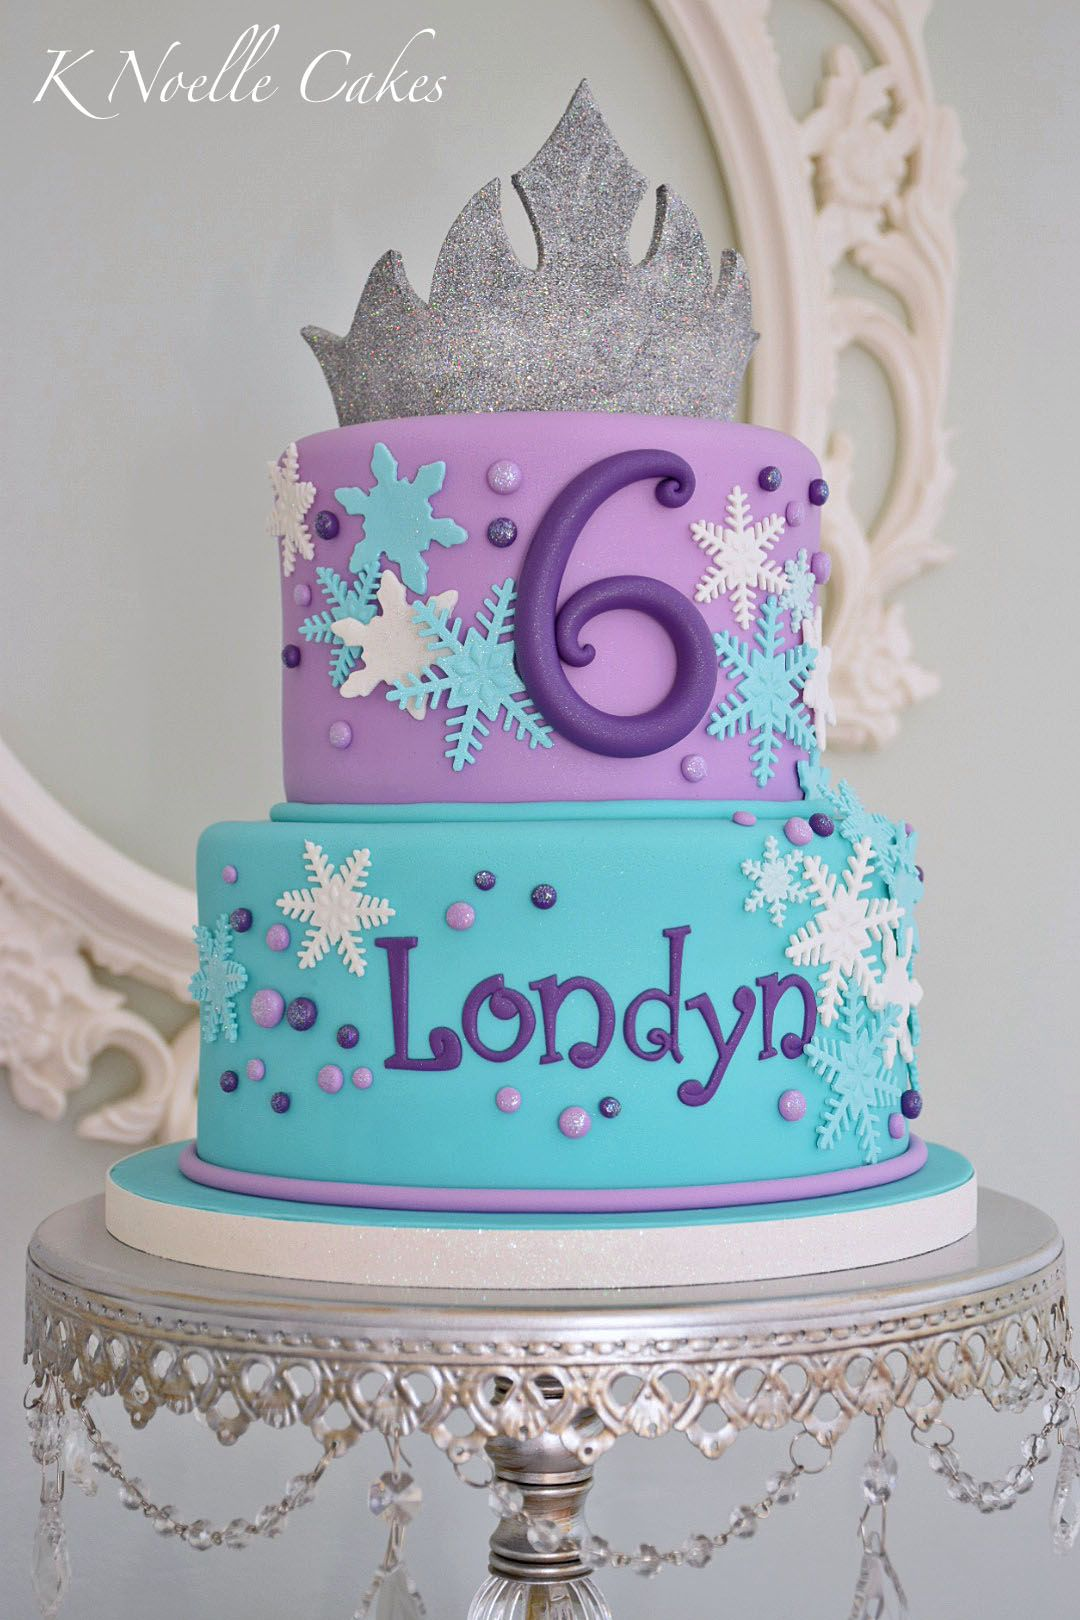 Frozen Theme Cake By K Noelle Cakes